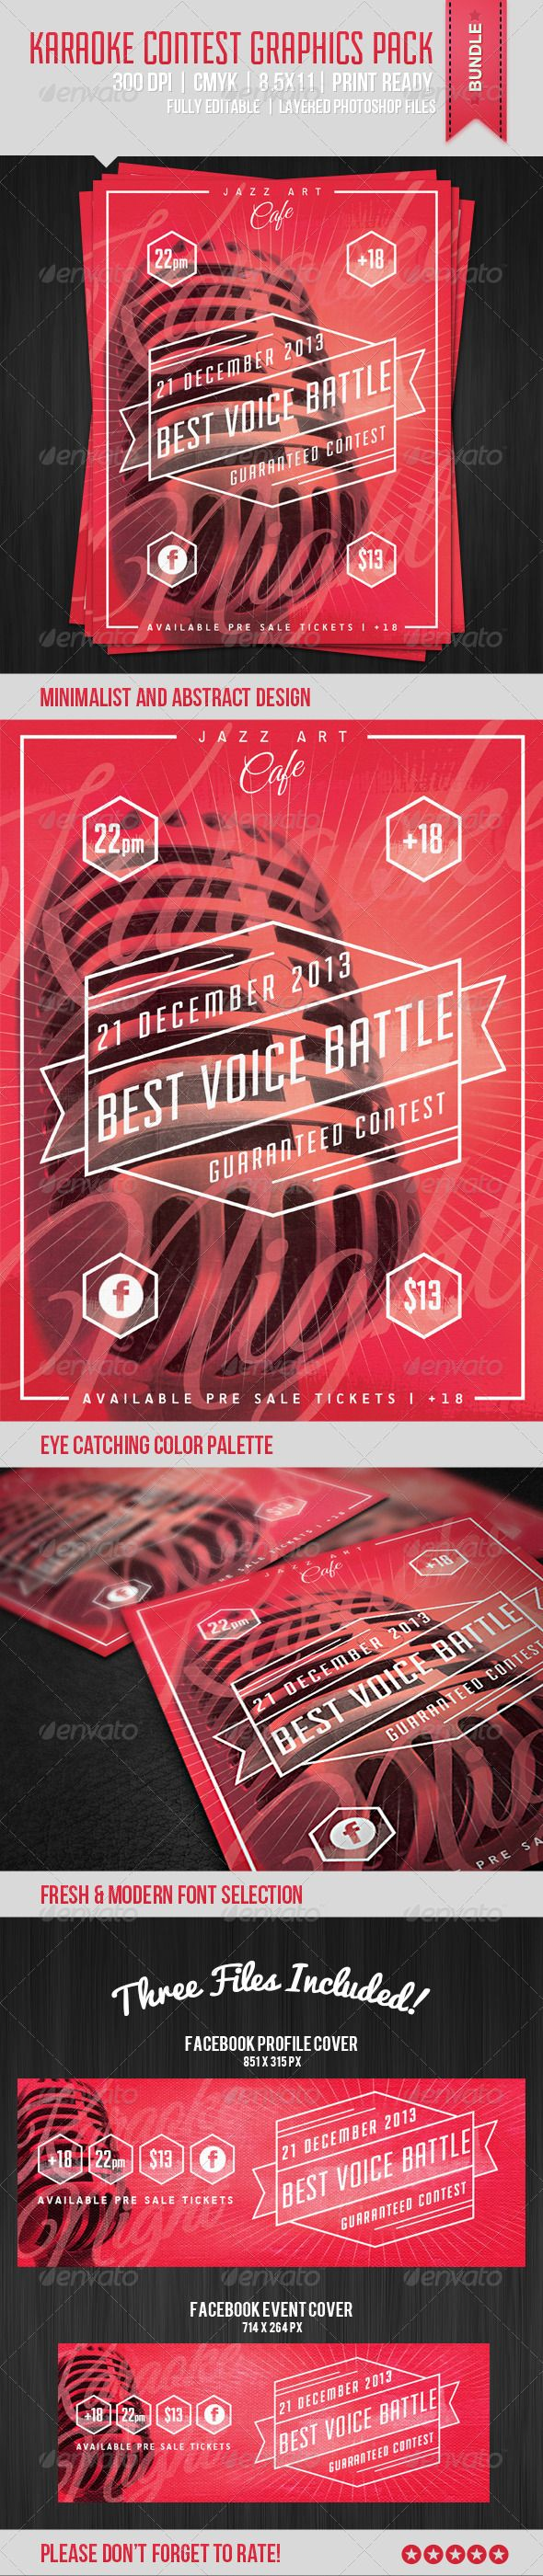 Karaoke Contest Poster — Photoshop PSD #microphone #music • Available here → https://graphicriver.net/item/karaoke-contest-poster/6012827?ref=pxcr